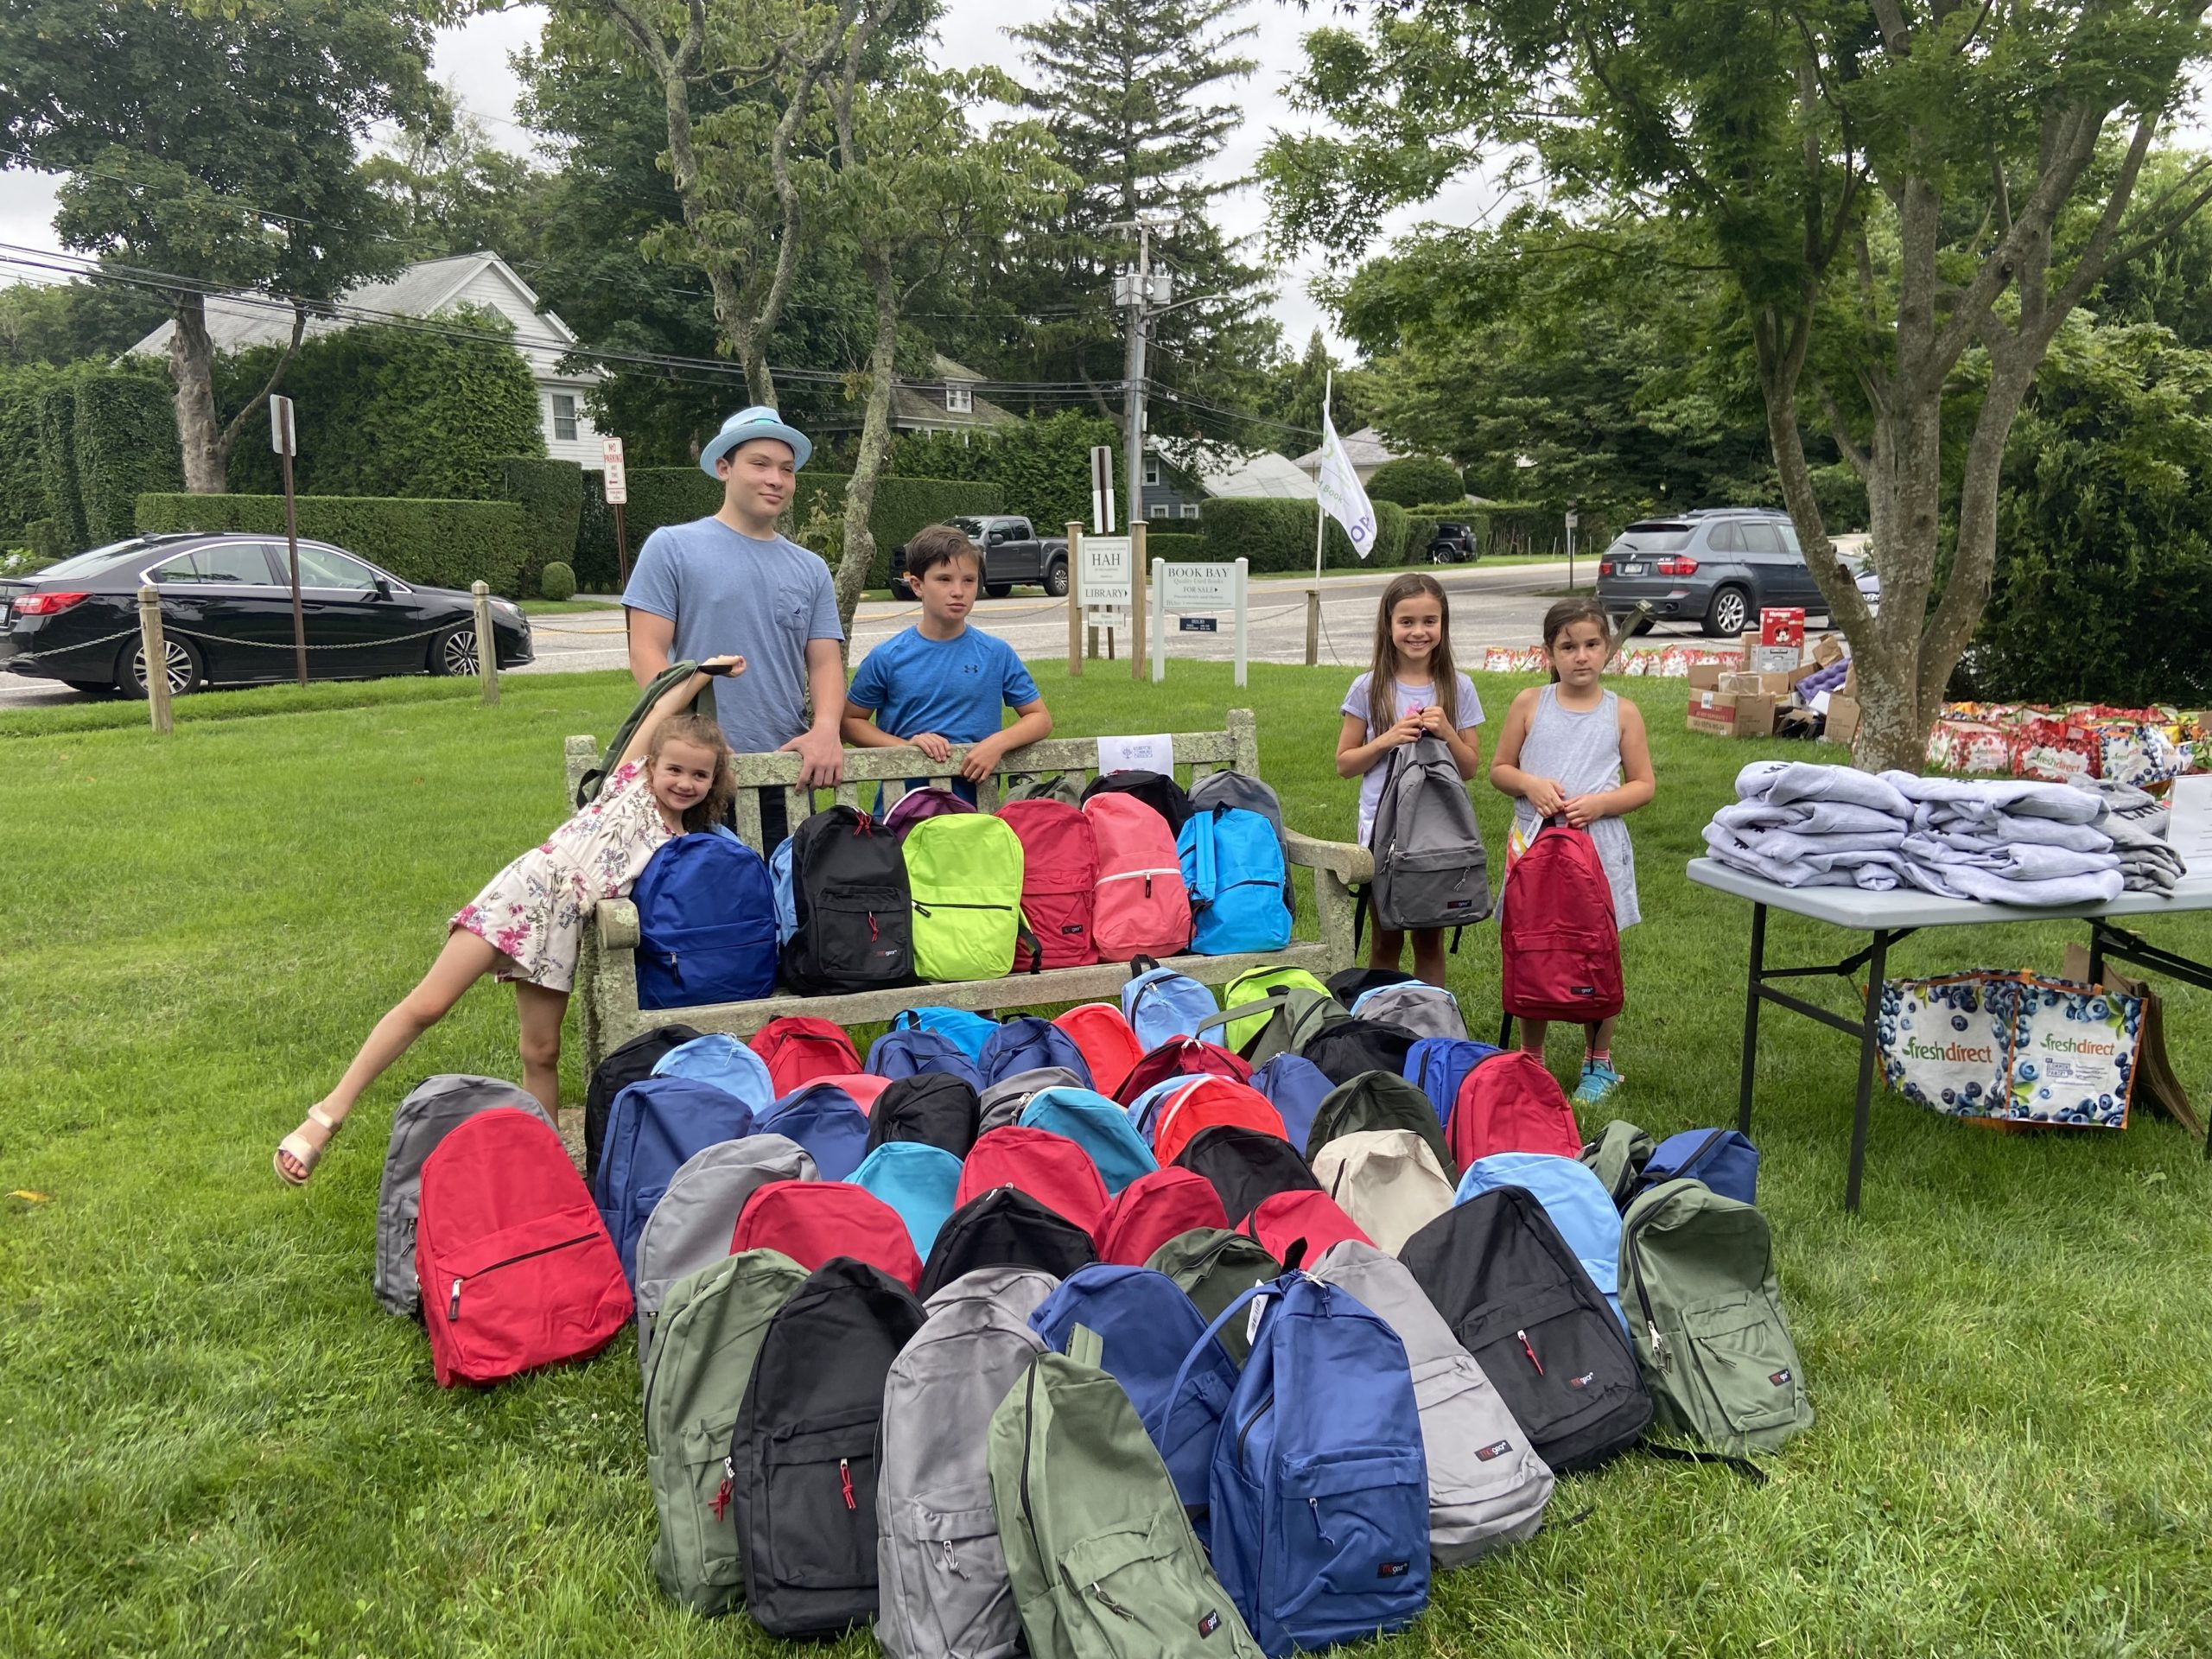 Young volunteers packed the bags with food, activities, and summer essentials.